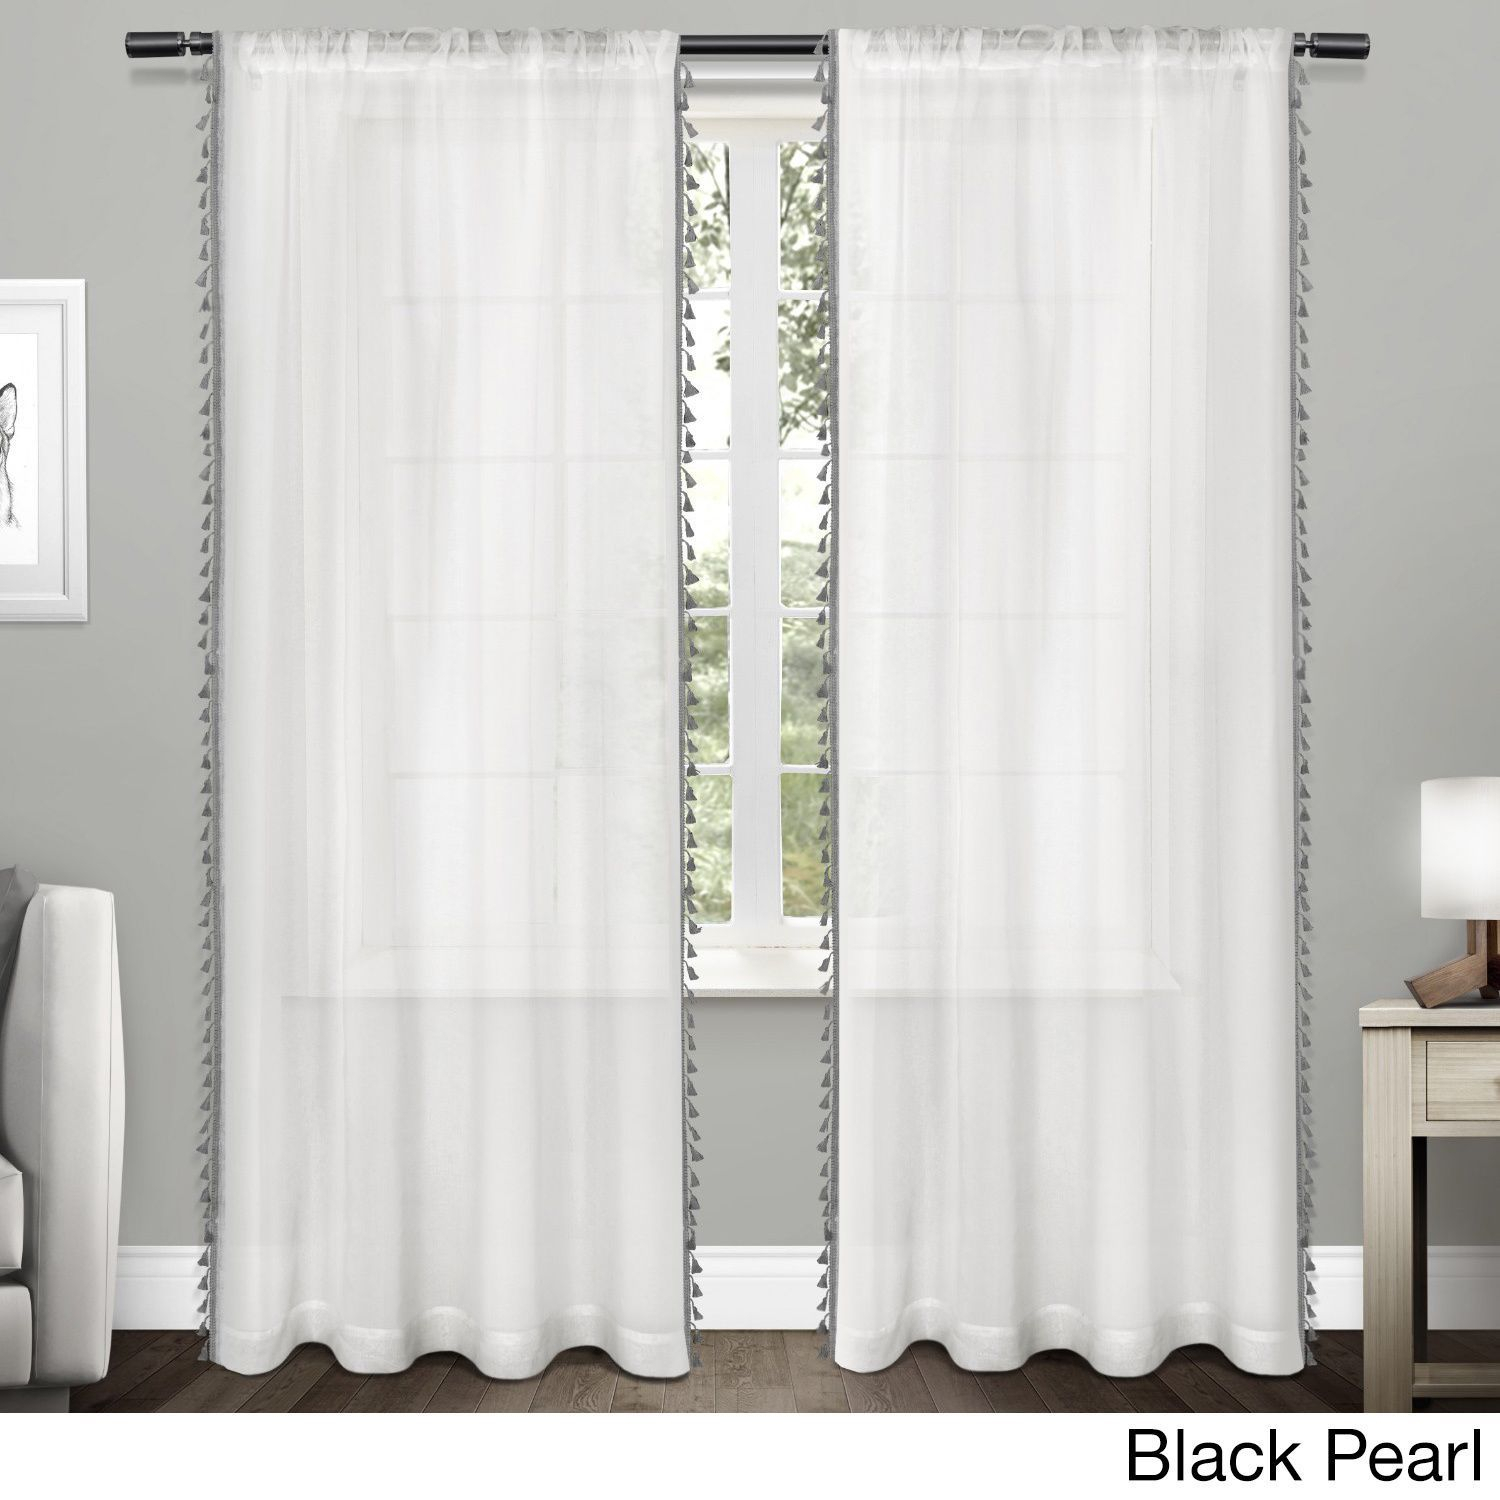 Ati Home Rod Pocket Curtain Panel Pair With Tassels (Tassels For Tassels Applique Sheer Rod Pocket Top Curtain Panel Pairs (View 4 of 30)